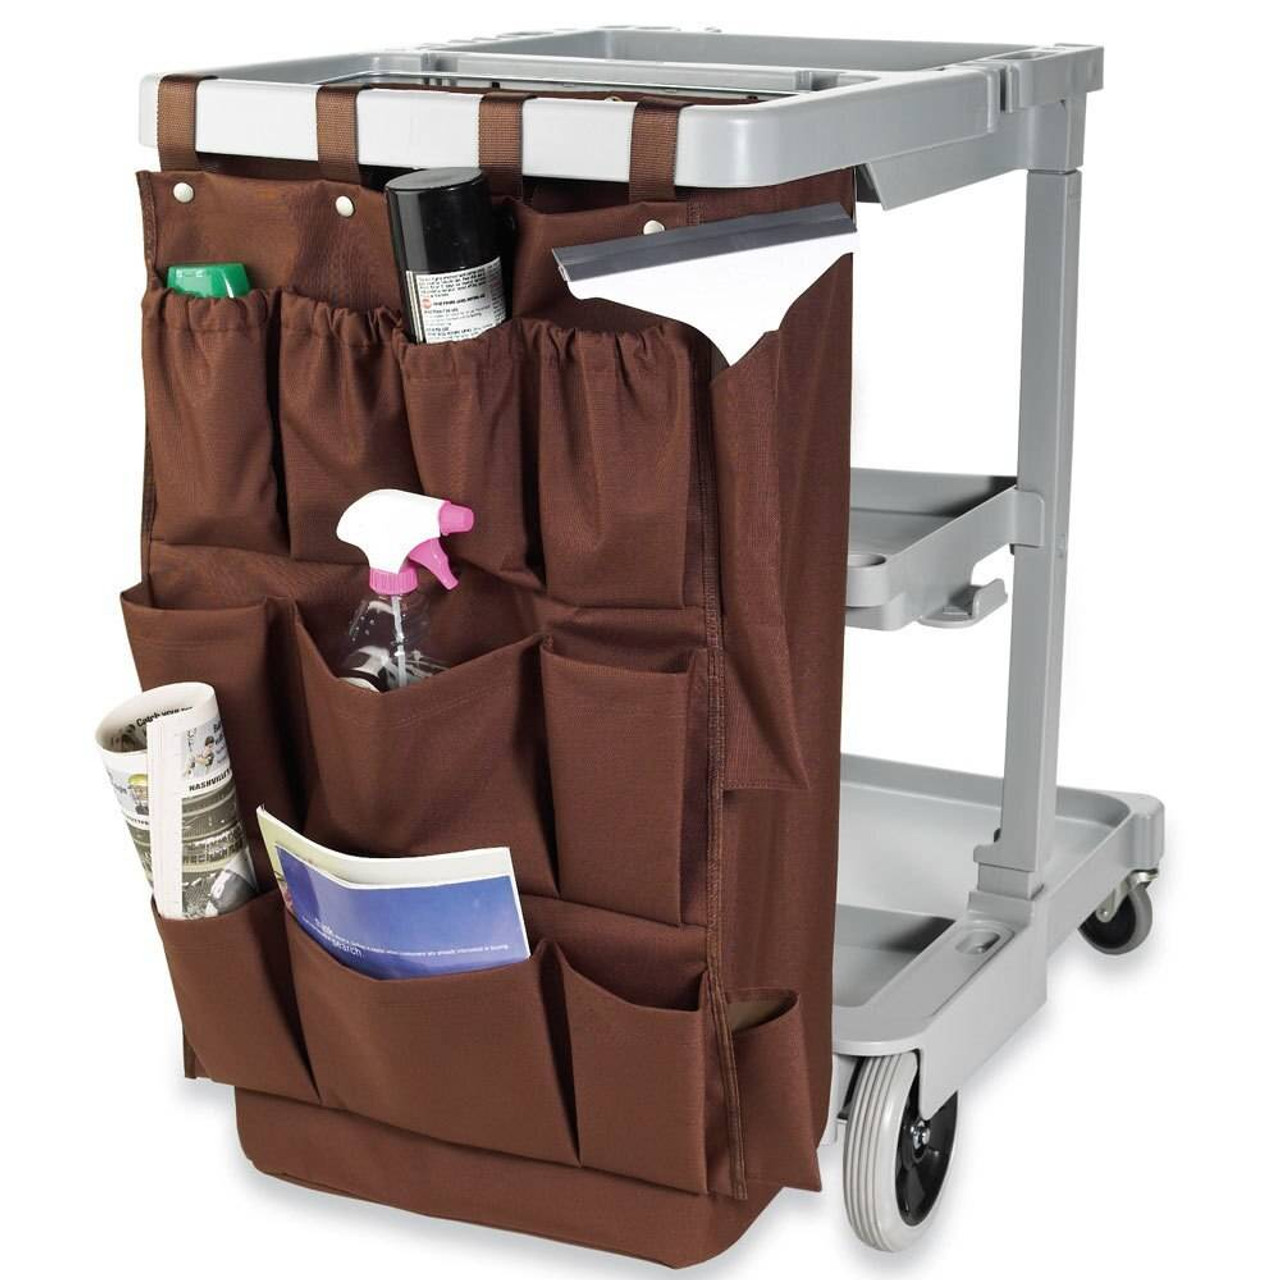 HOSPITALITY 1 SOURCE HOSPITALITY 1 SOURCE or 12 POCKET or X DUTY HOUSEKEEPING or CADDY BAGS or 19x32 or BROWN or 5 PER CASE